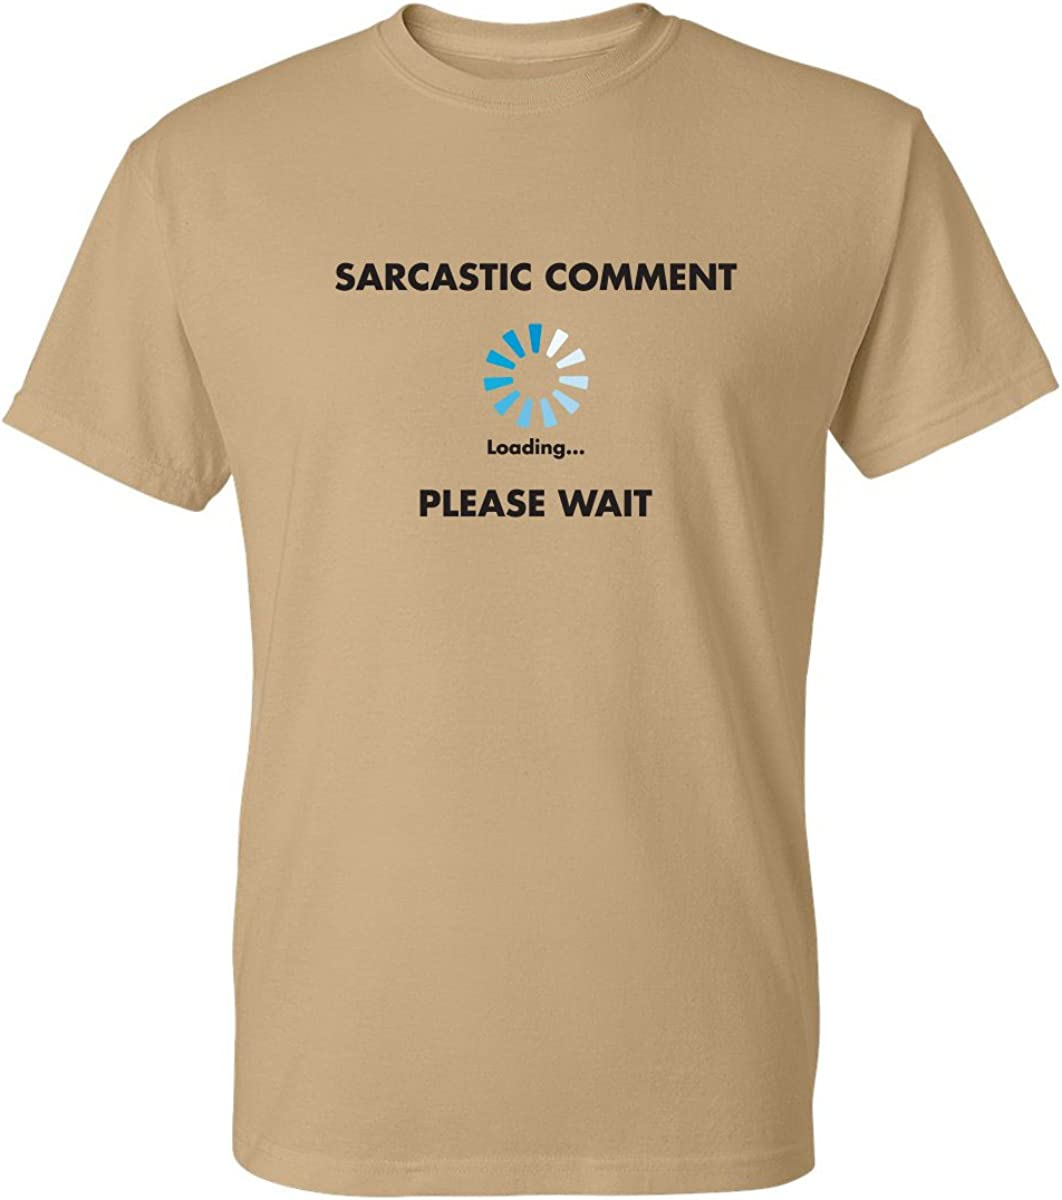 Sarcastic Comment Loading Novelty Sarcasm Humor Teen Gift Ideas Funny T Shirt